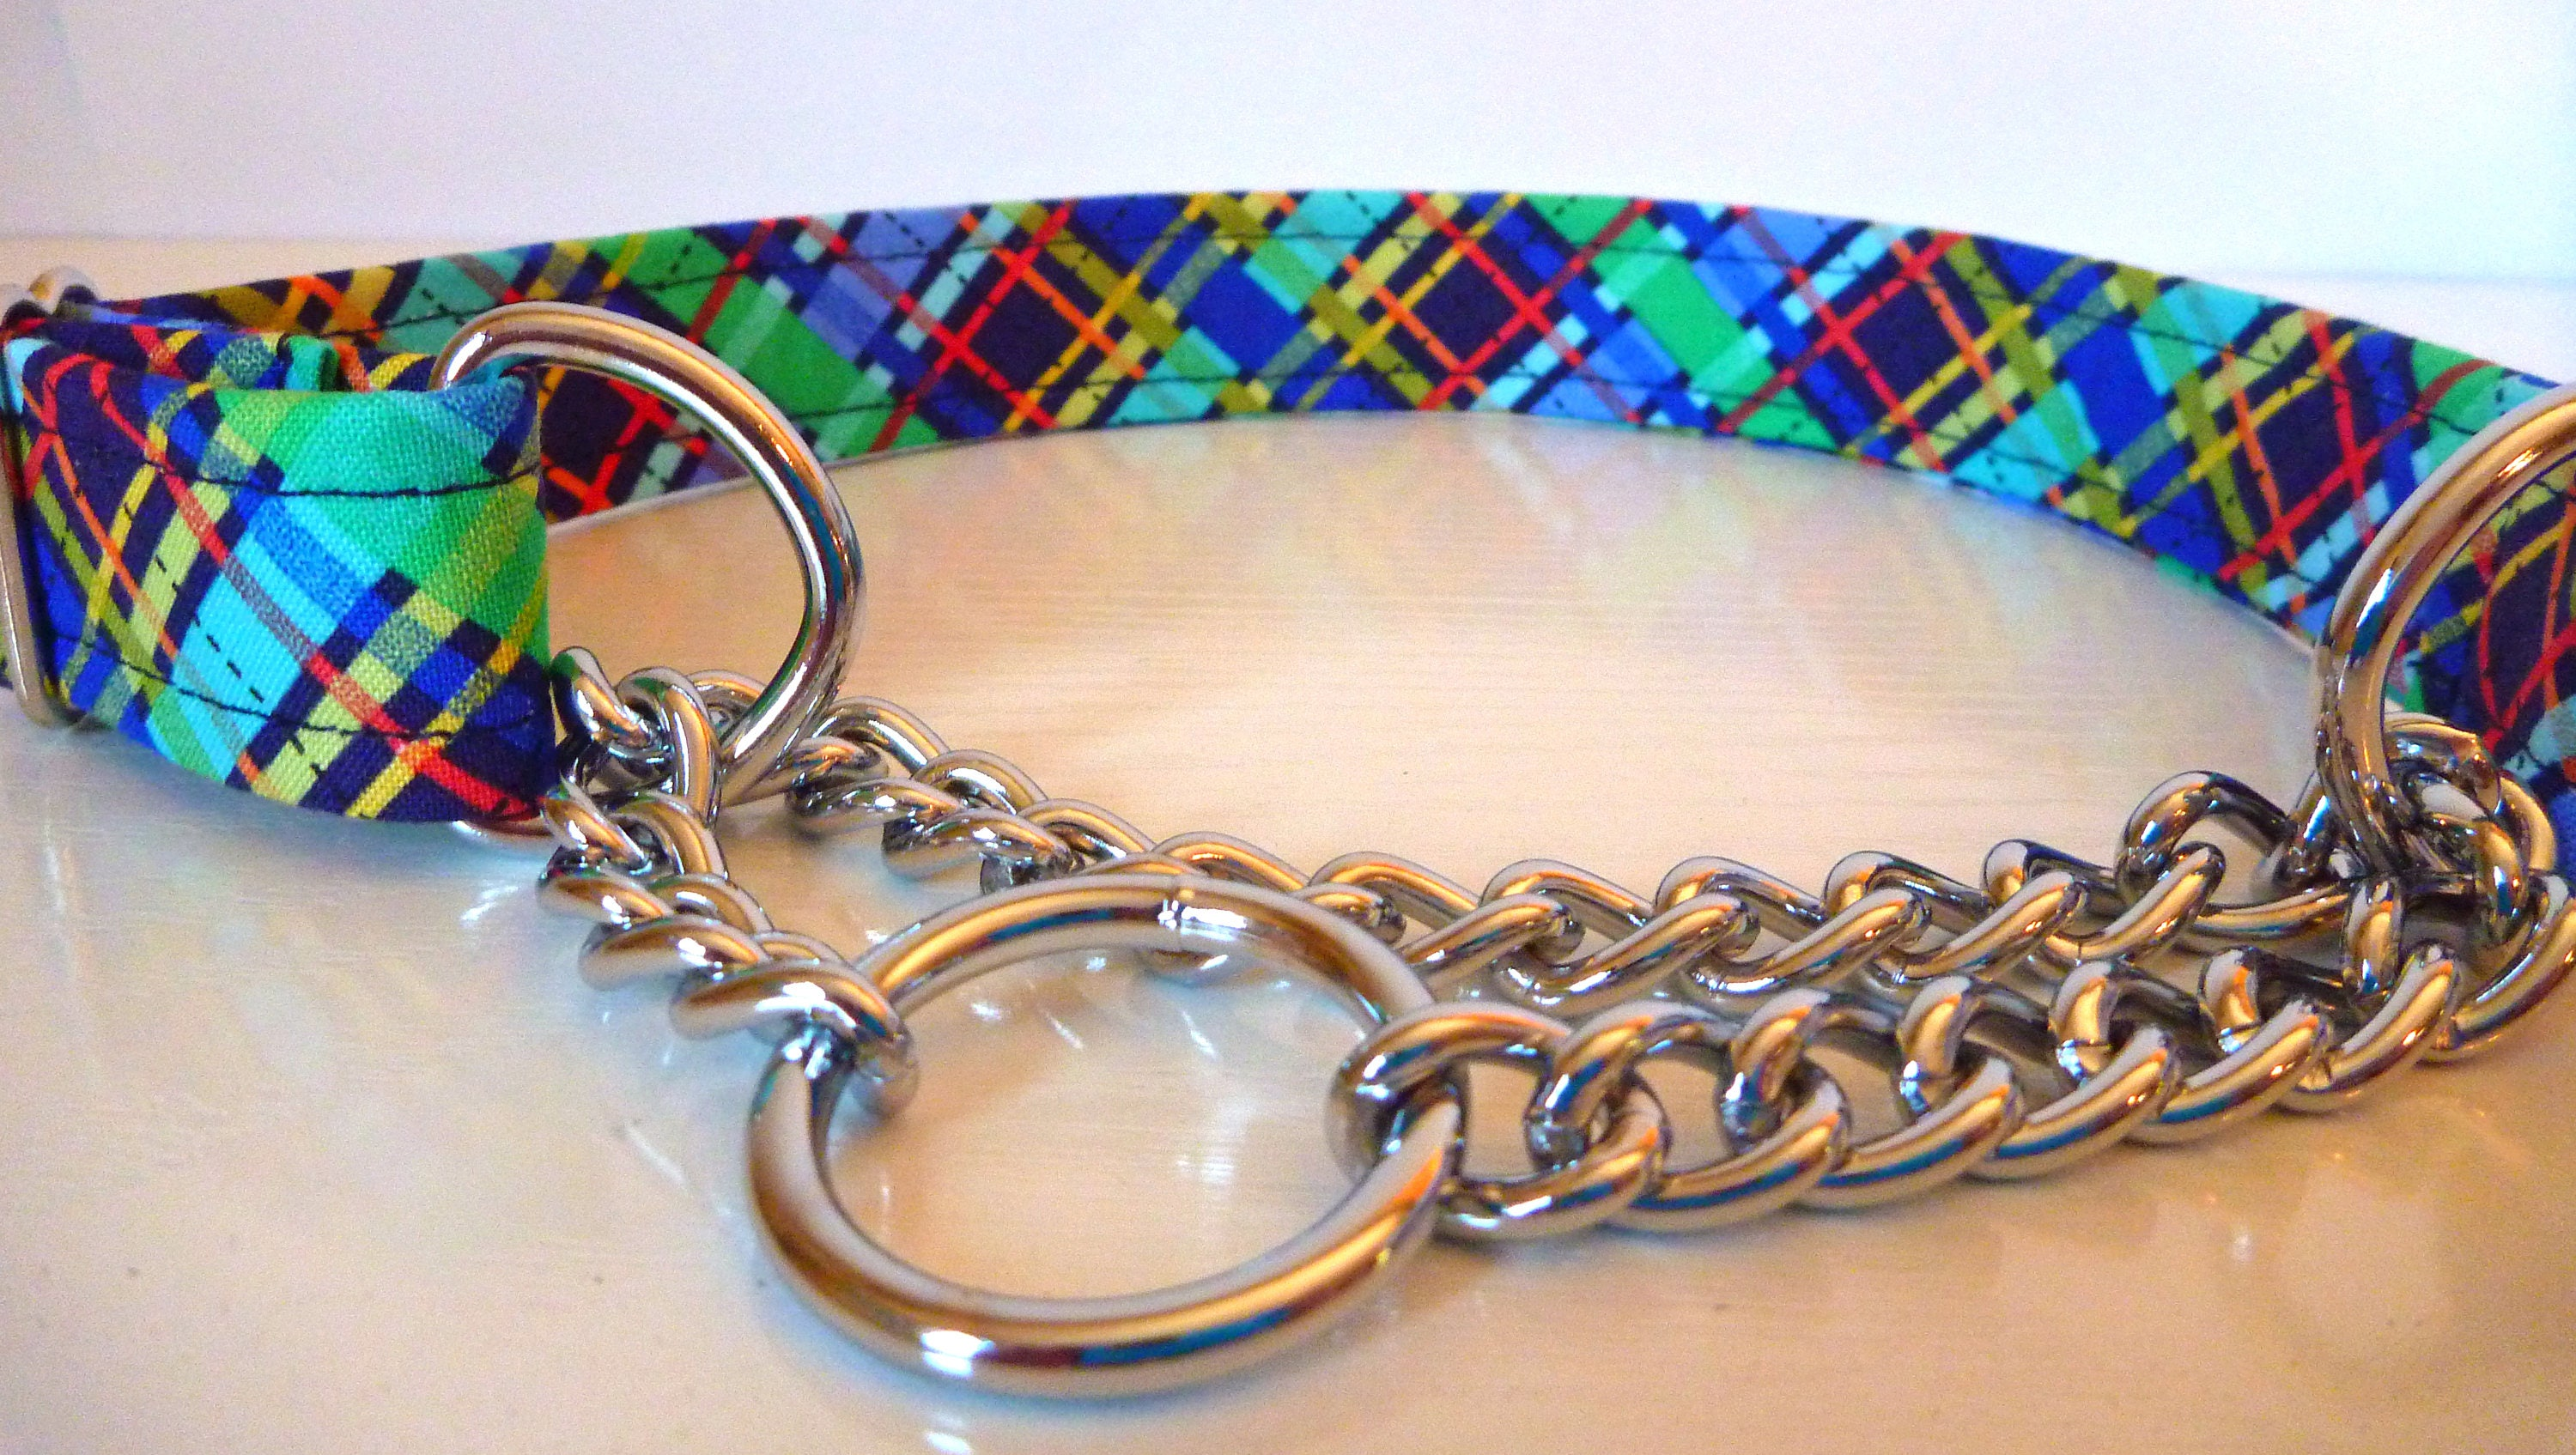 How To Make A Dog Collar With Twill Tape